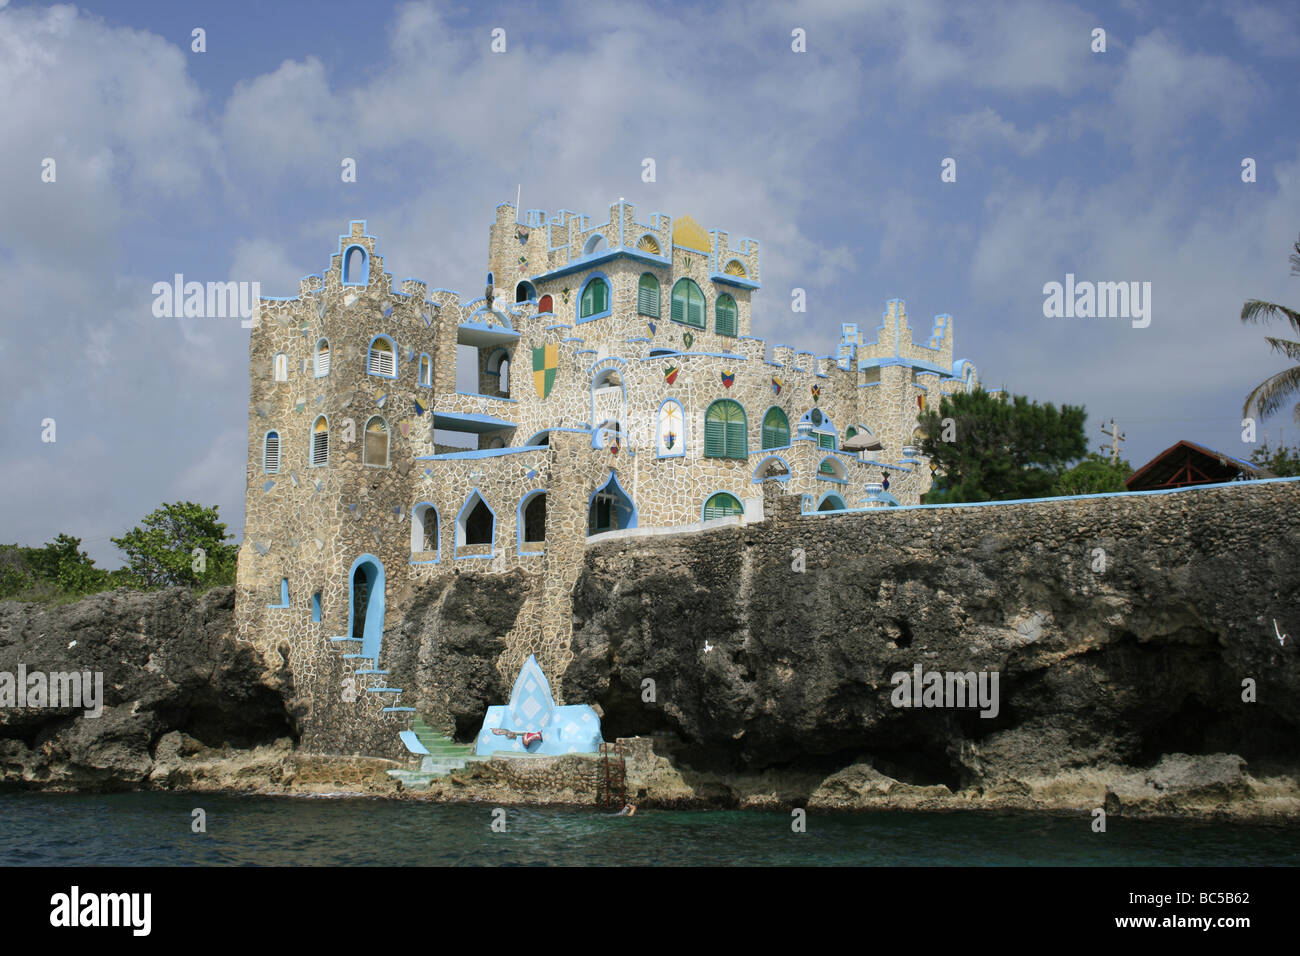 The Blue Cave Castle hotel perched on the cliffs of Negril, Jamaica Stock Photo